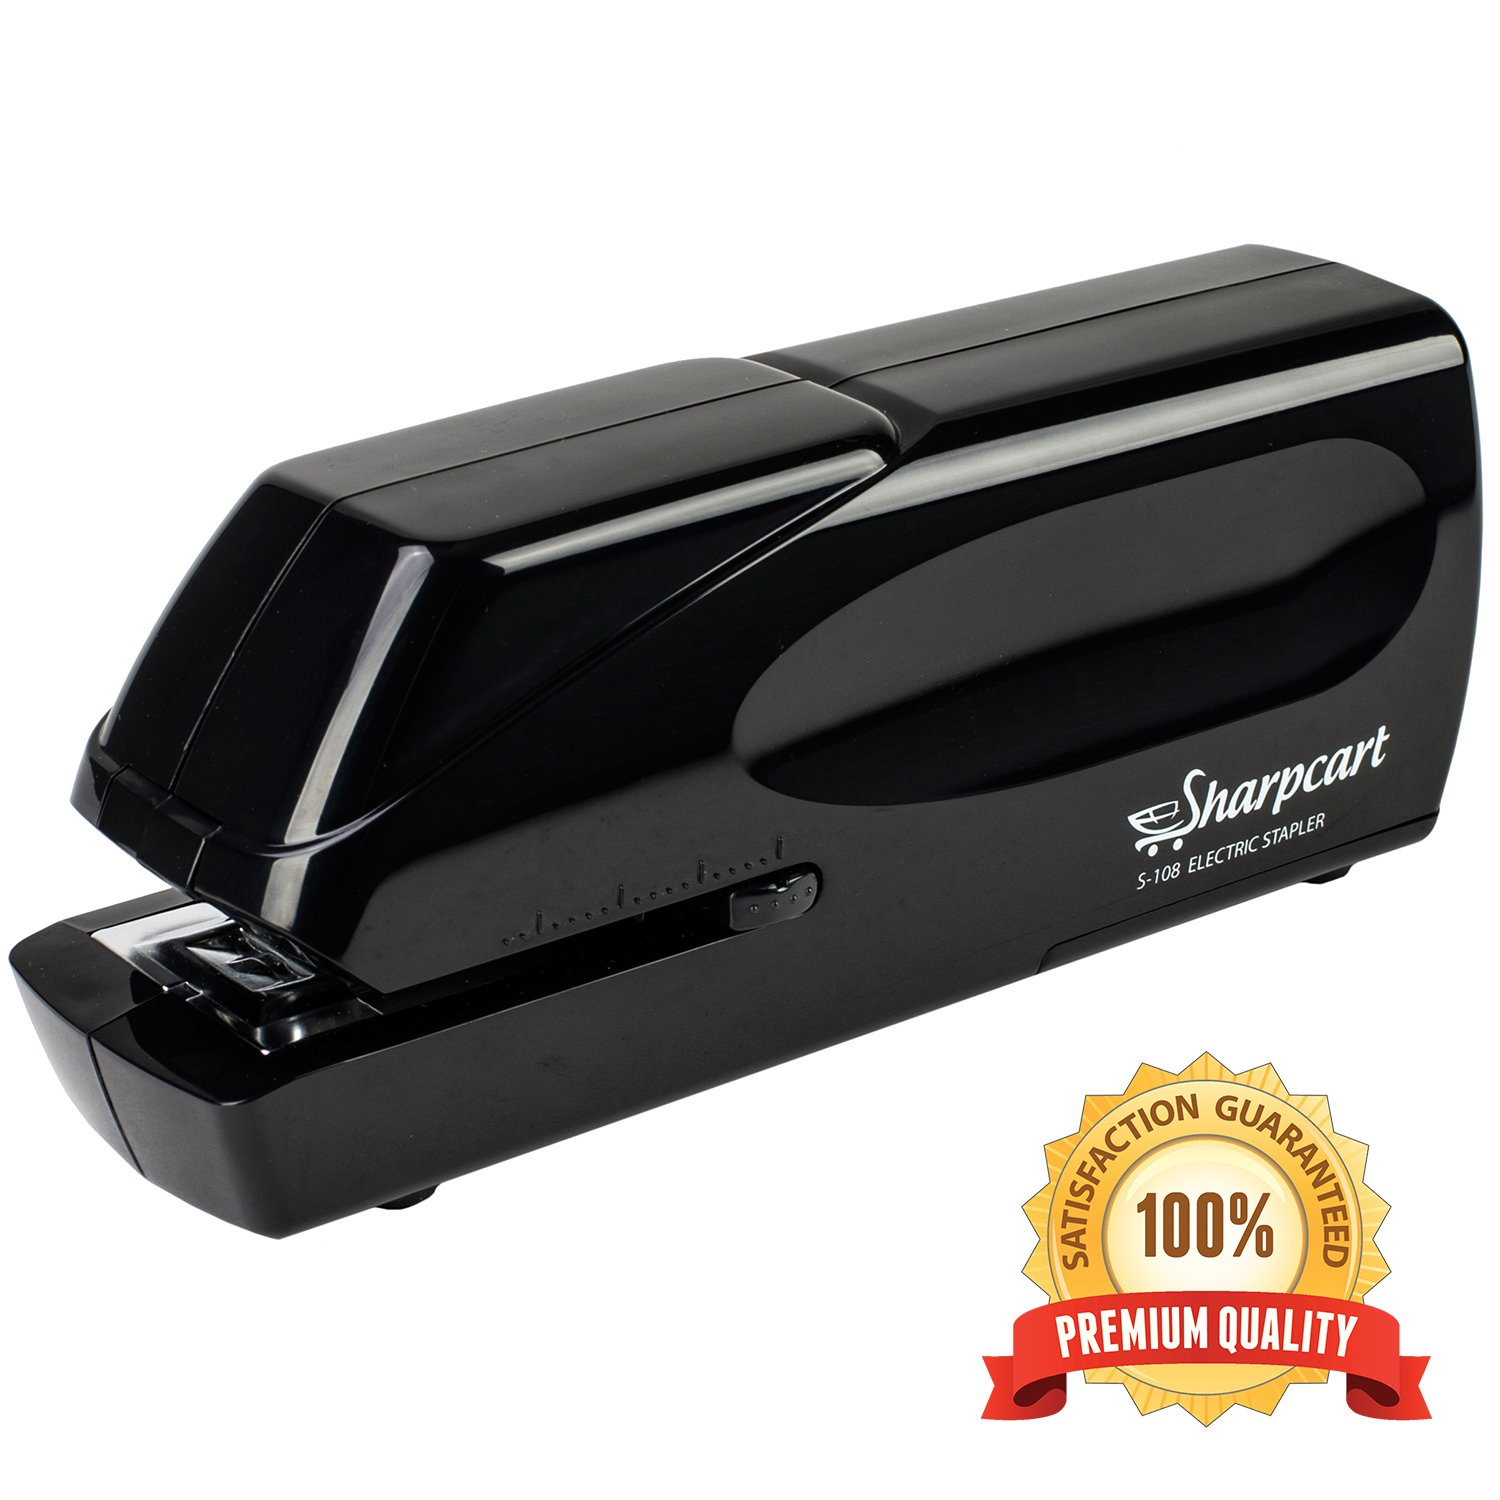 25 Sheet Capacity Electric Stapler - Automatic Heavy Duty No-Jam Stapler - Battery Operated or AC Powered (AC Power Adapter Included) - 100% Satisfaction Guarantee by Sharpcart by OYFFSTORE